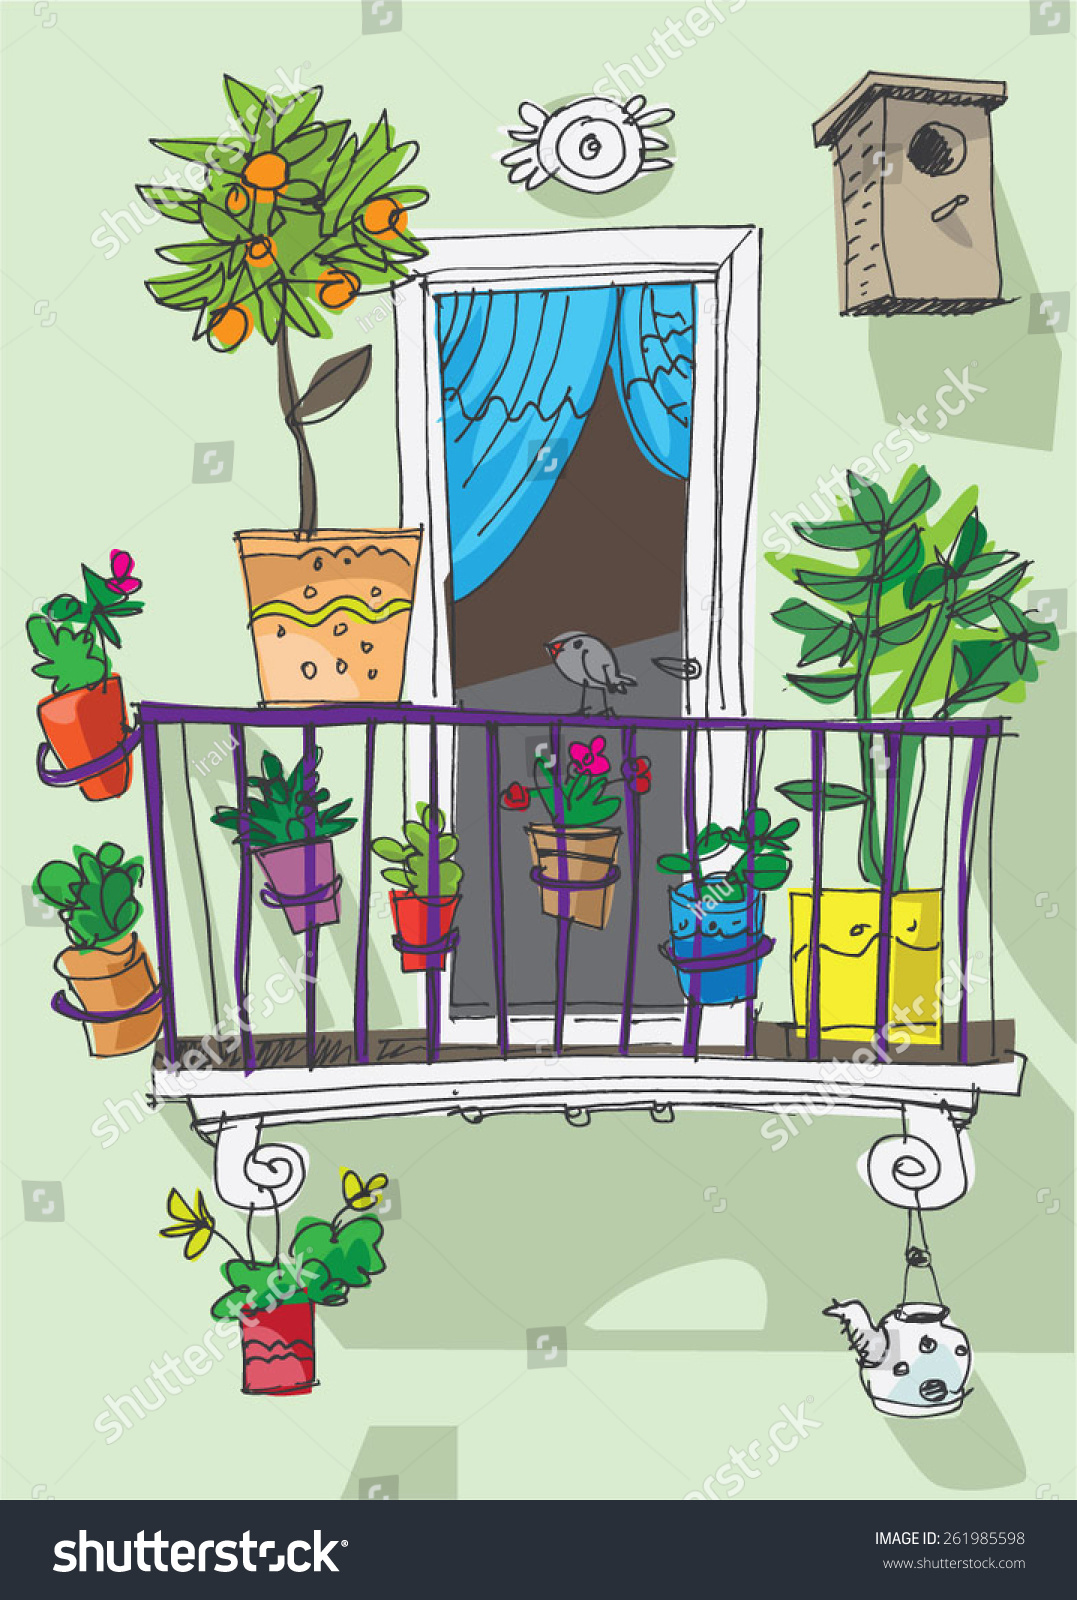 Cute cartoon clipart 69.cute balcony cartoon stock vector ir.